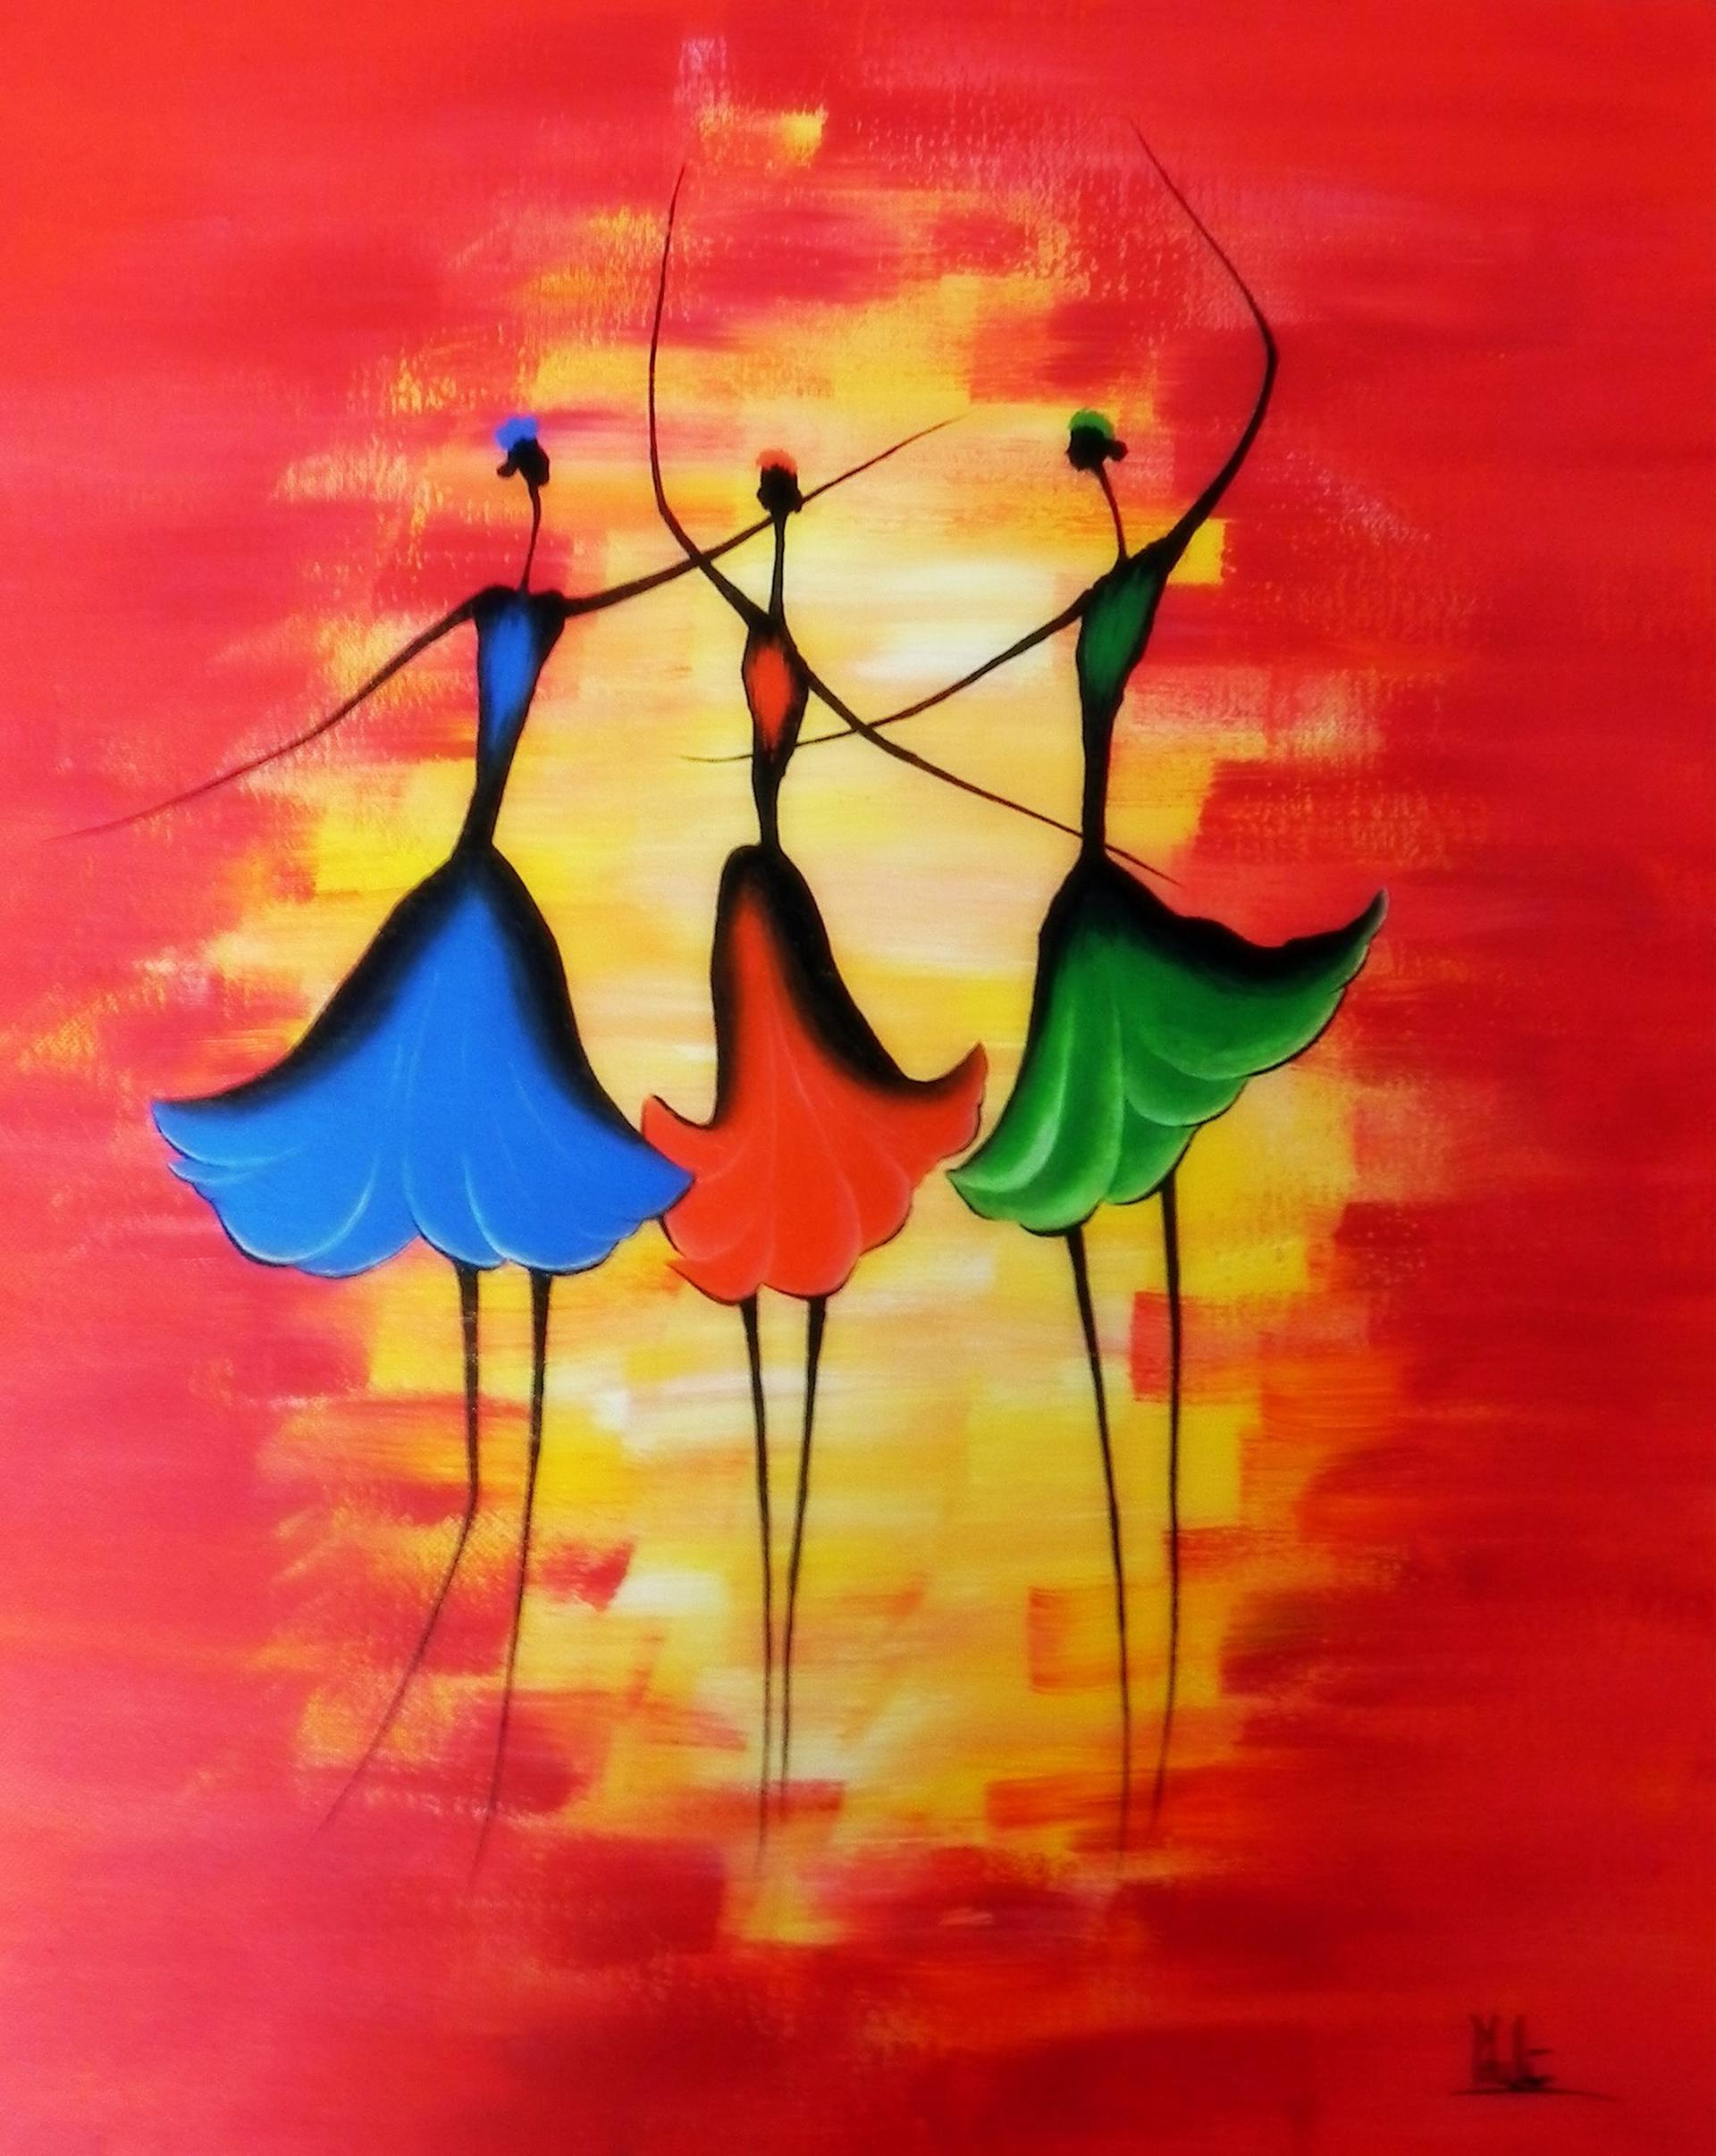 Abstract Painting Of Girl Dancing Dancing Girls Painting By Ca Arts And Crafts Saatchi Art